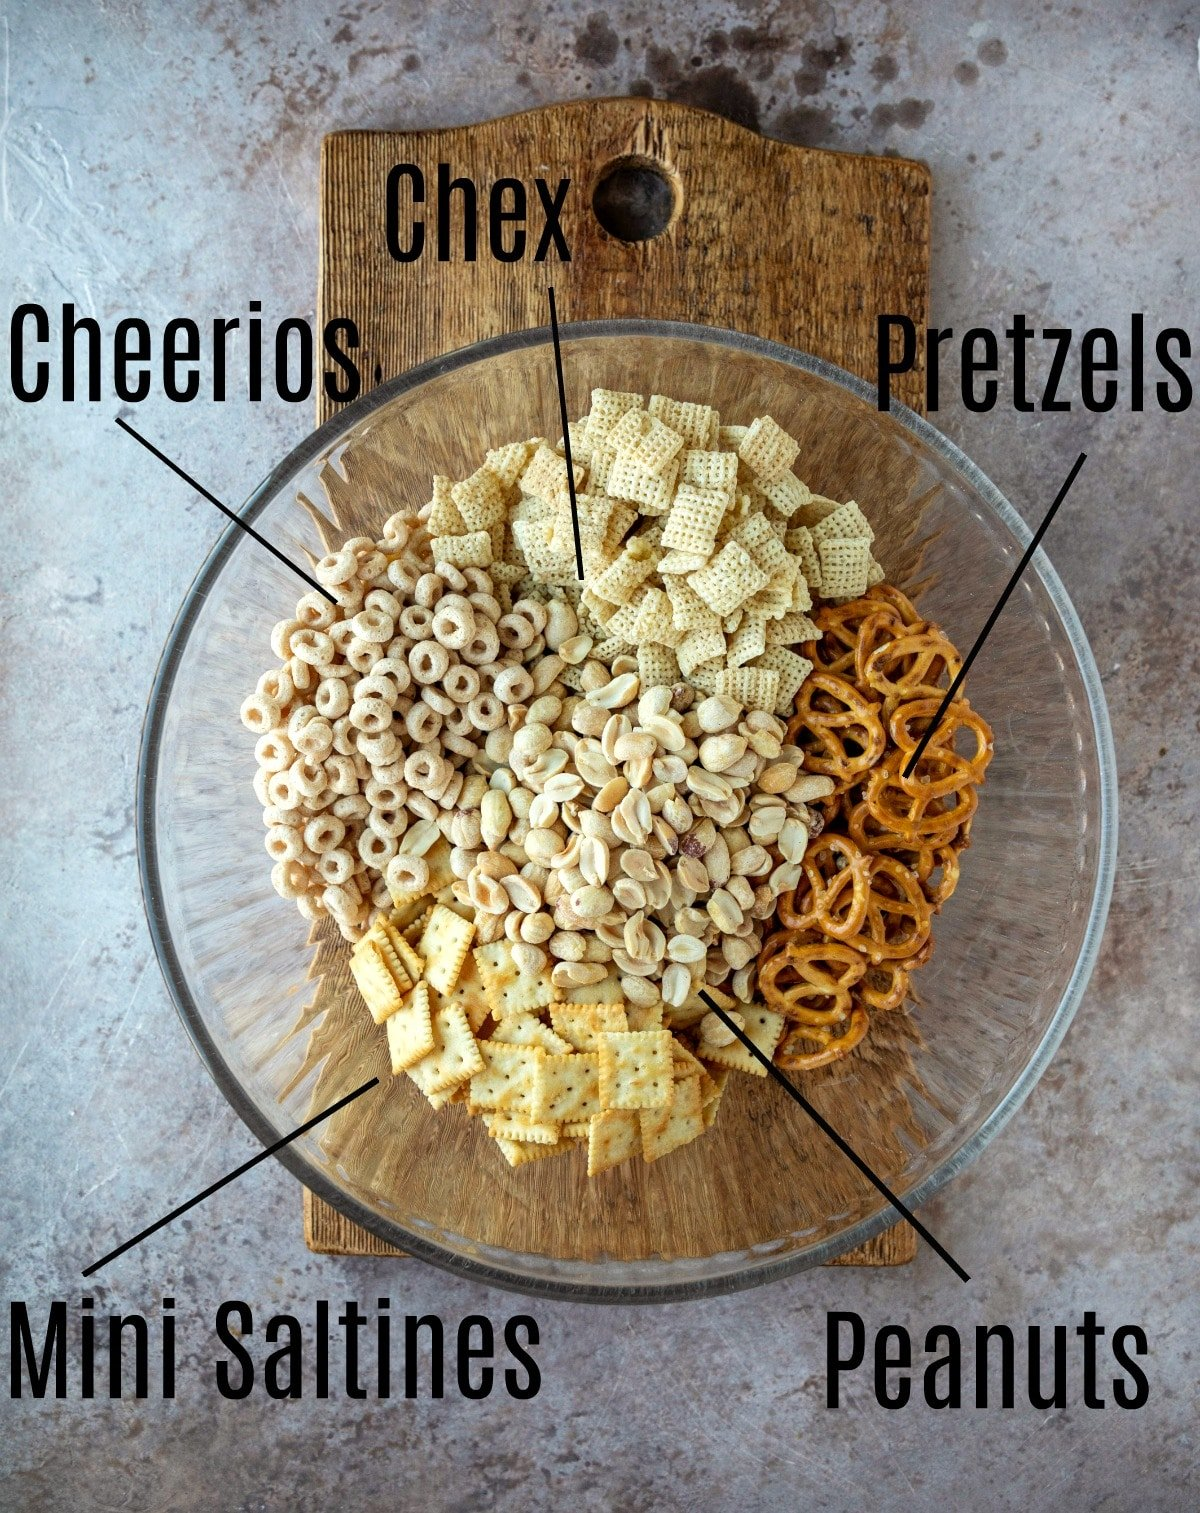 White chocolate party mix ingredients in a glass mixing bowl